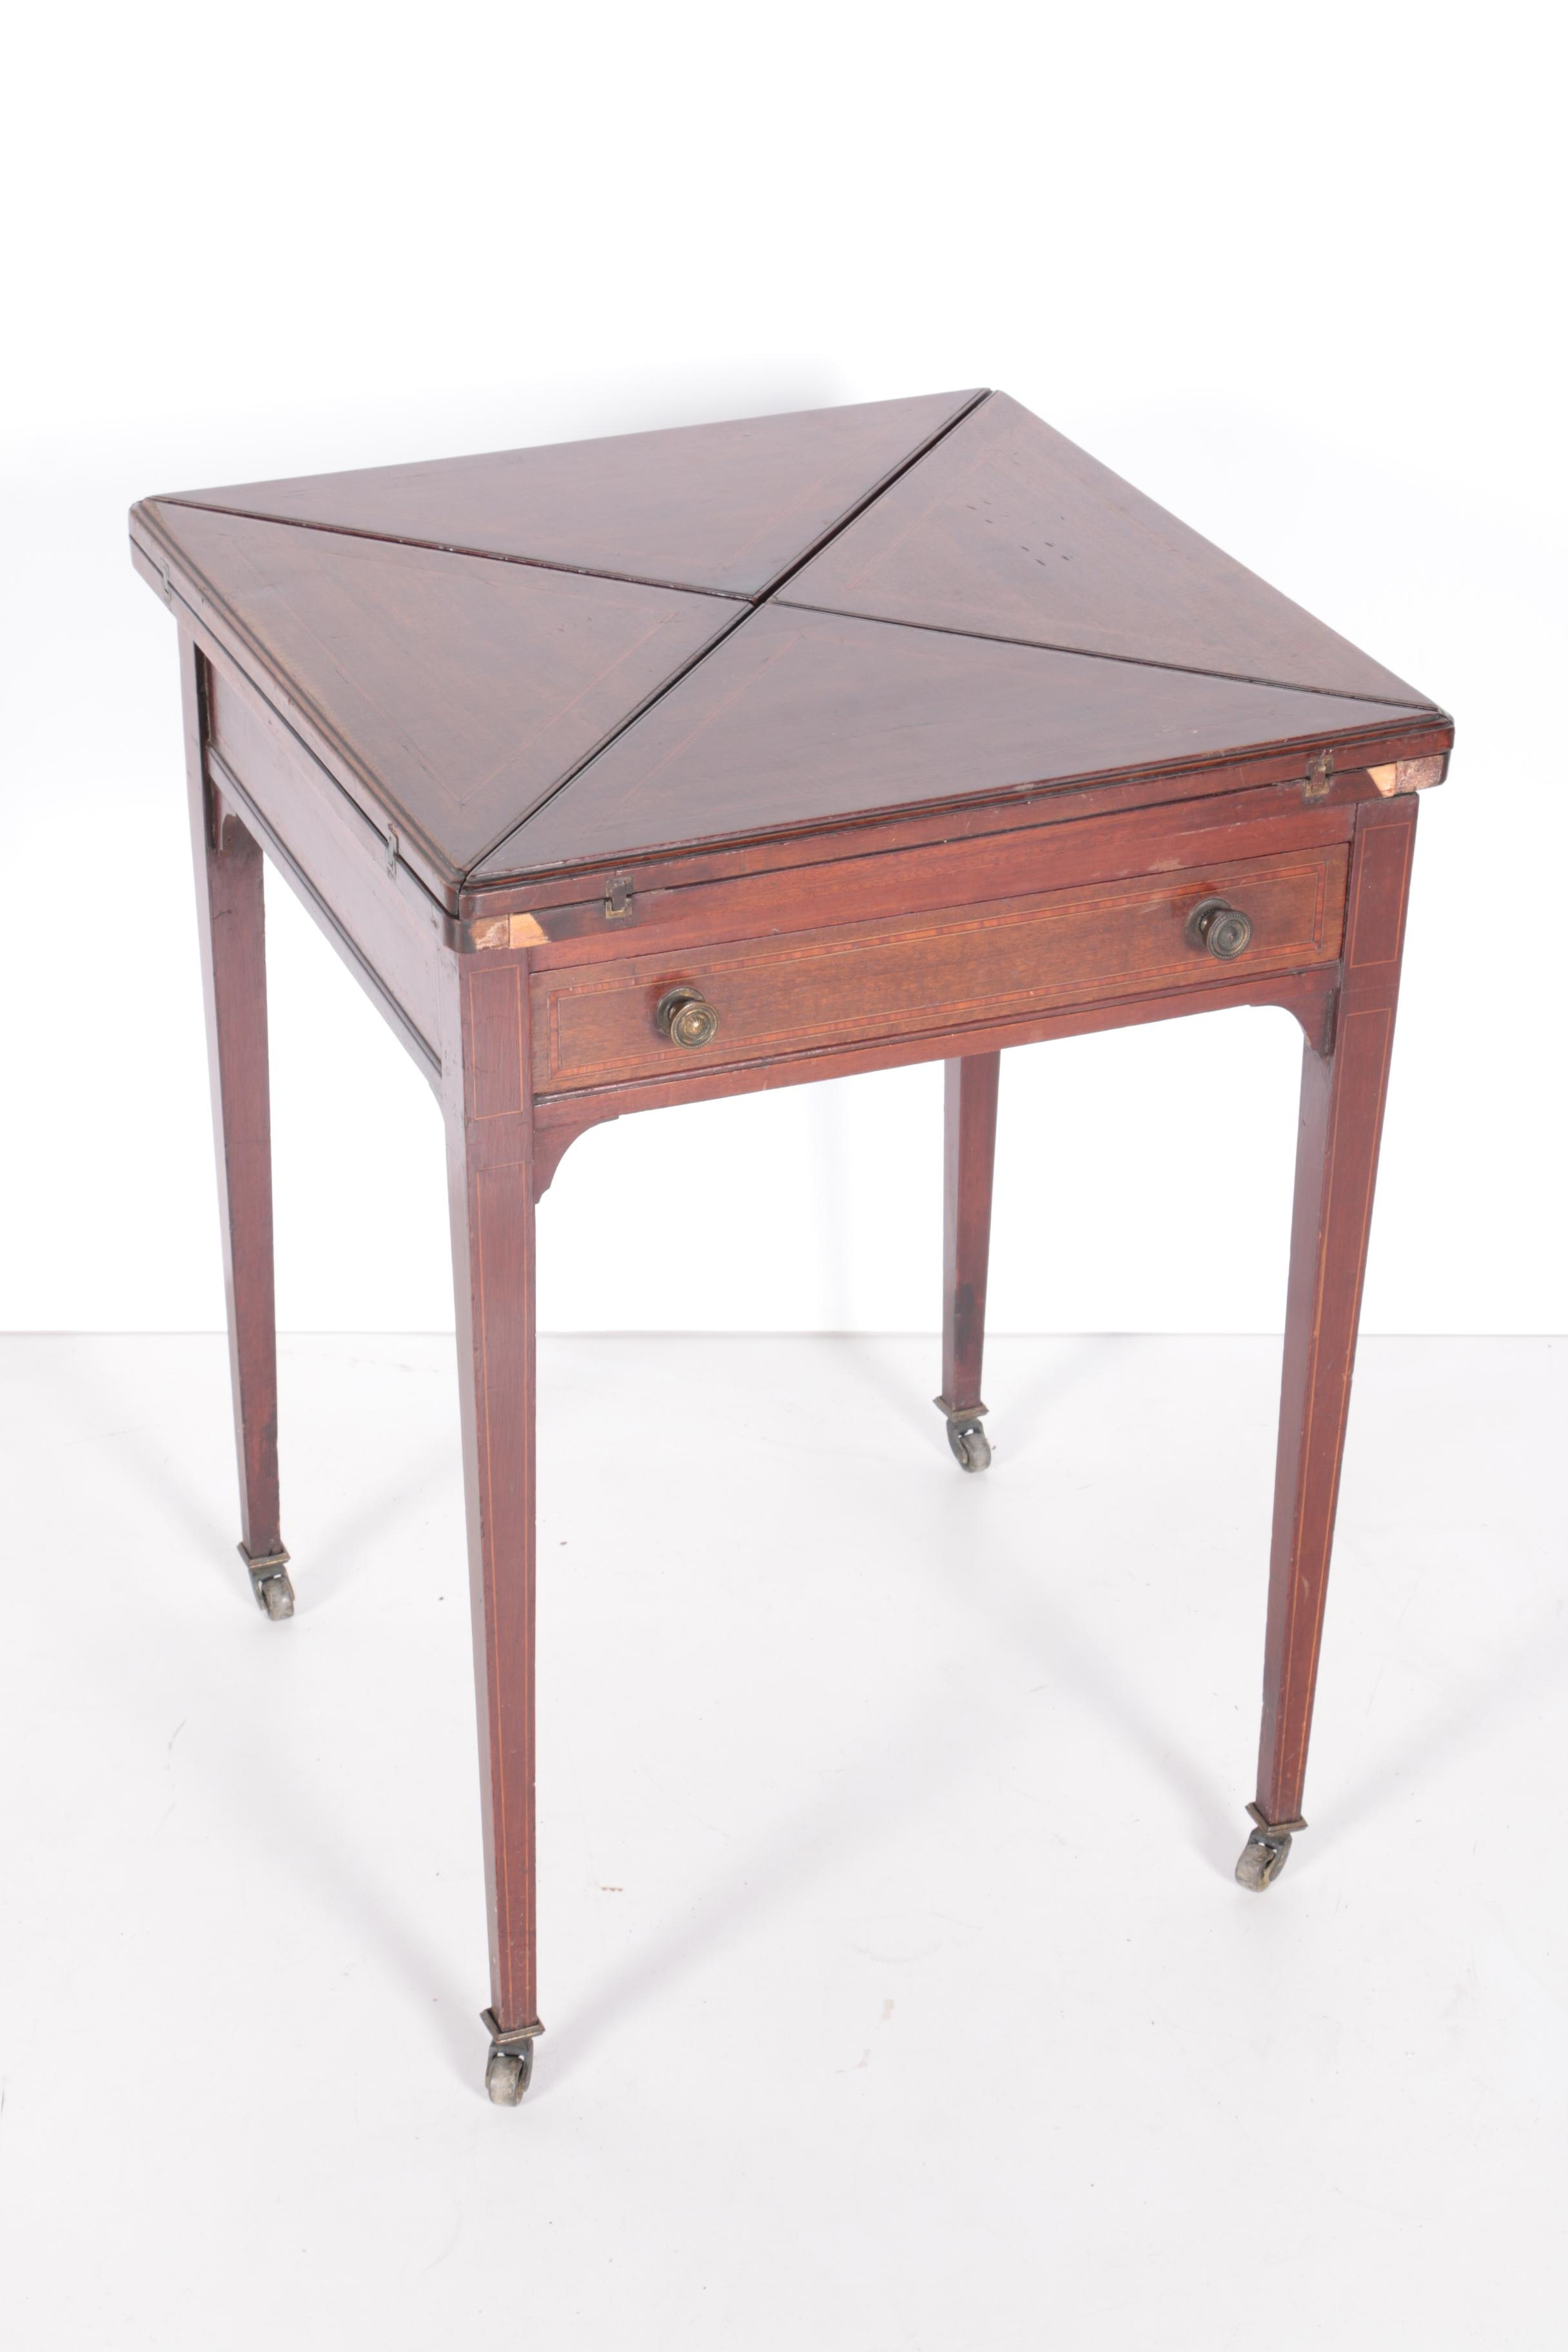 Antique English Inlaid Games Table